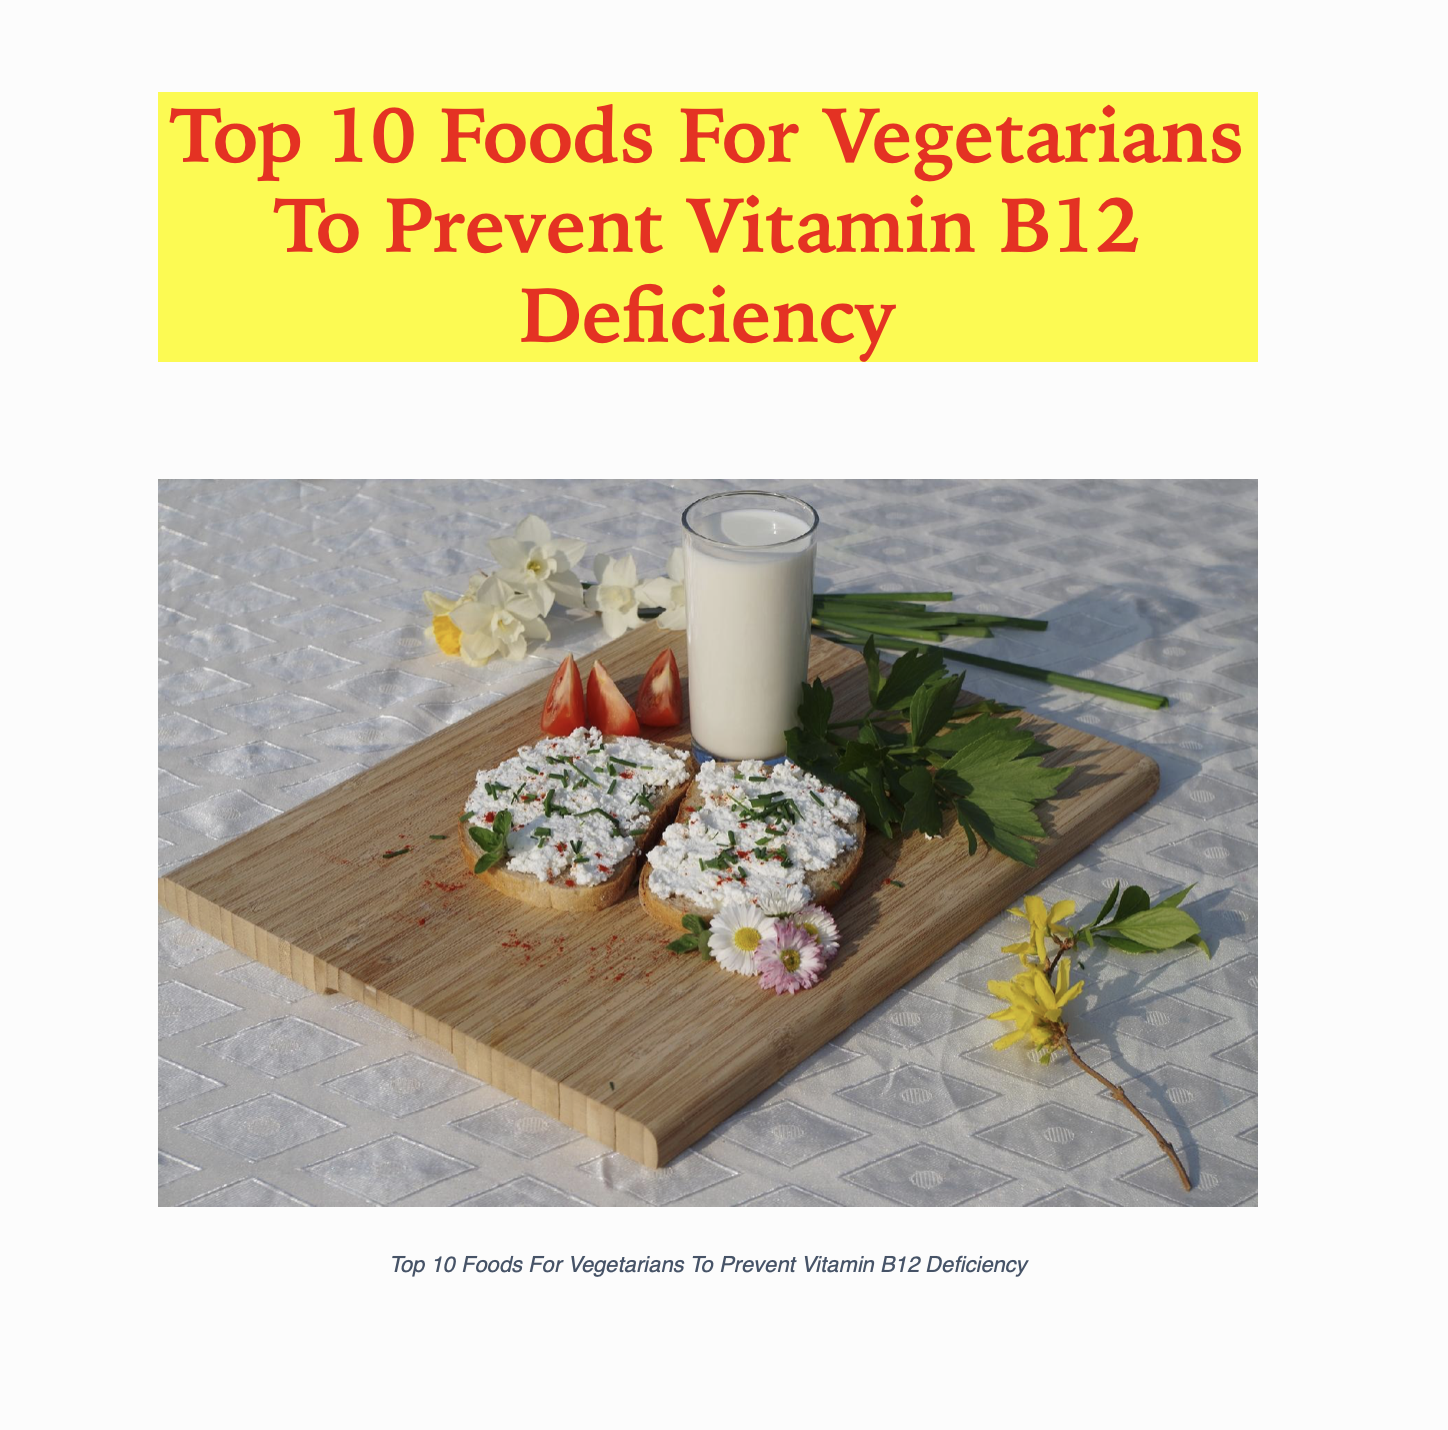 Top 10 Foods For Vegetarians To Prevent Vitamin B12